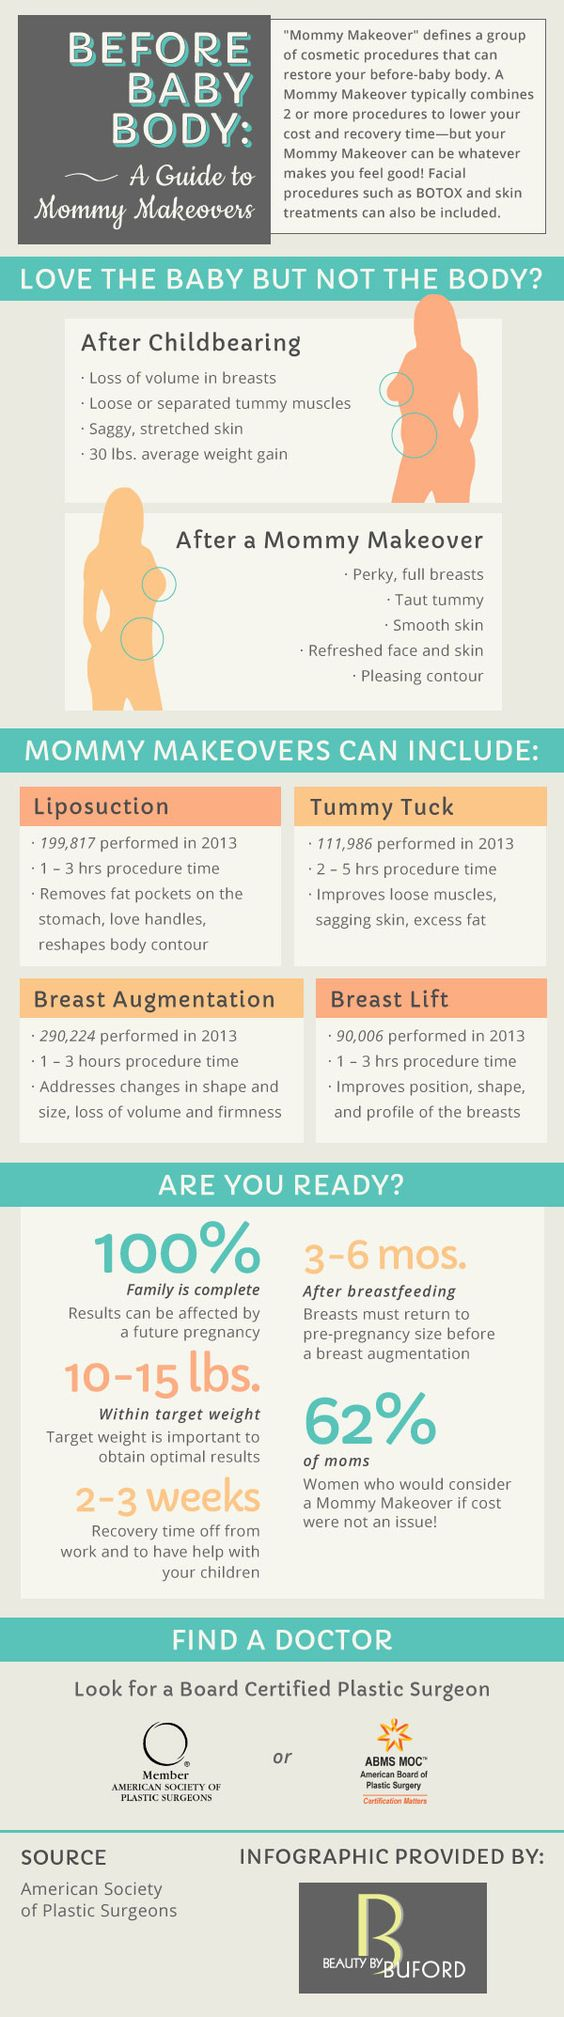 Guide to Mommy Makeover